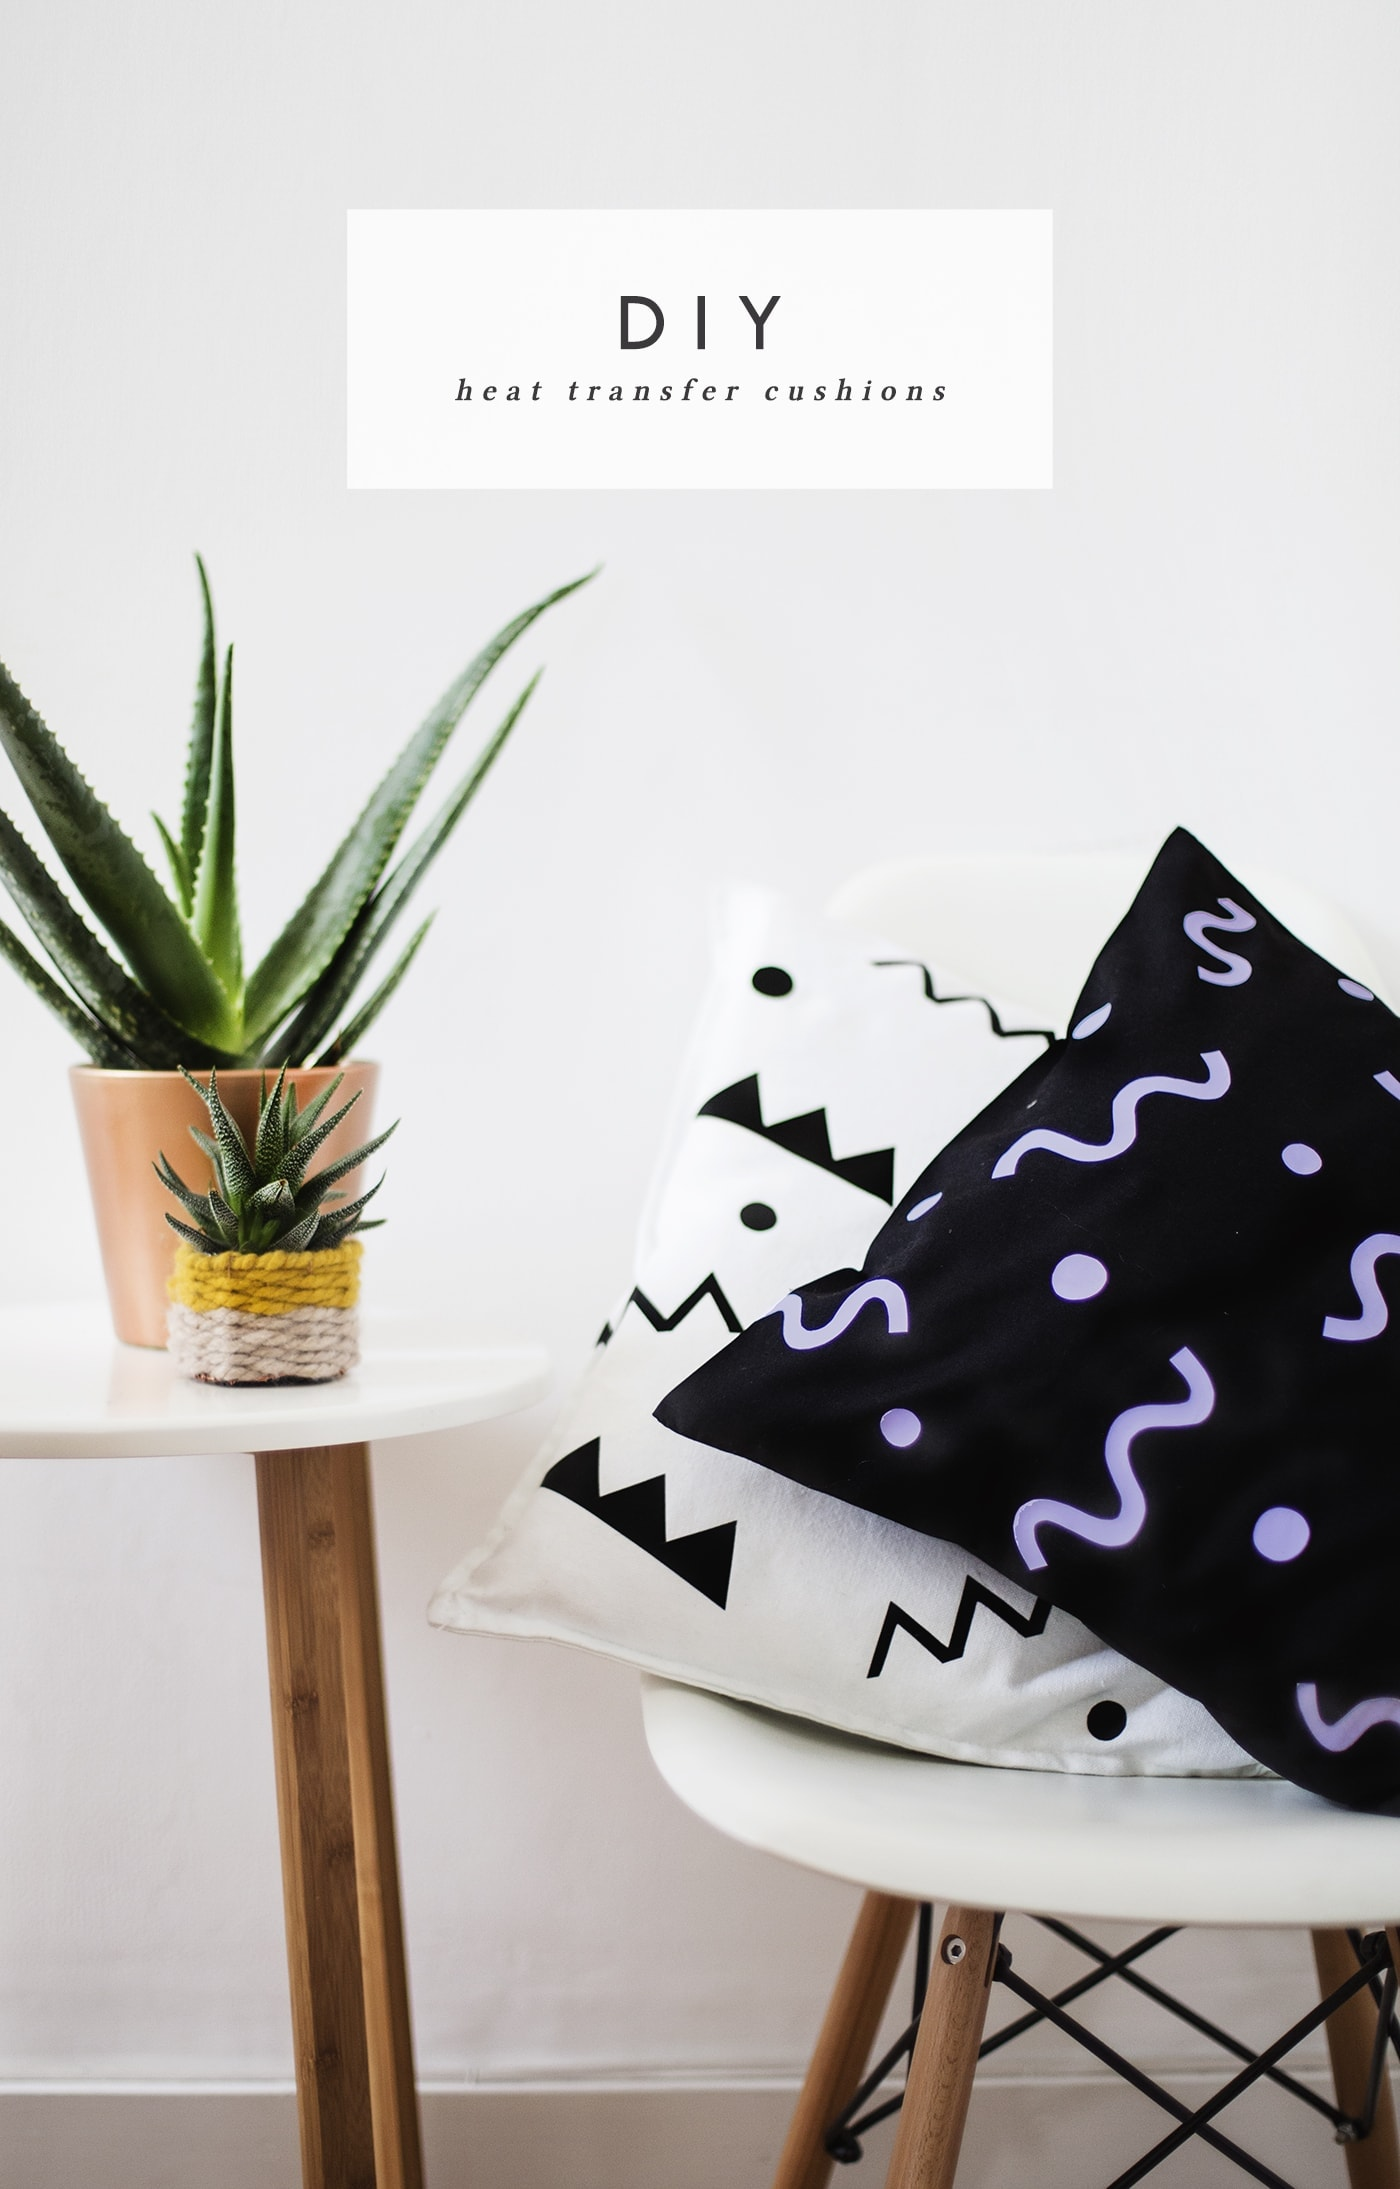 DIY heat transfer cushion idea